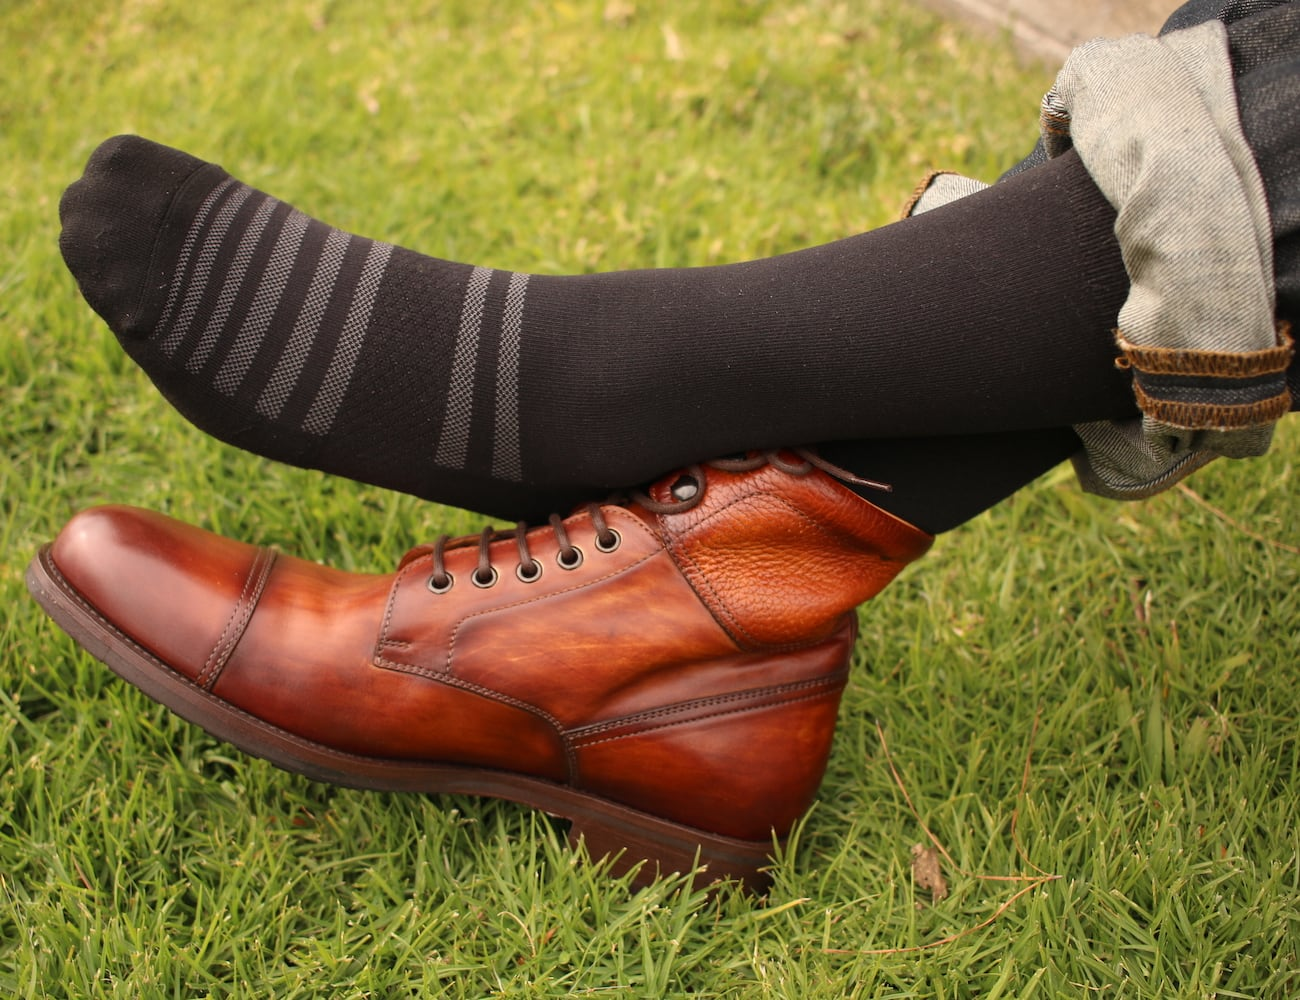 ALMI Pro-Formance Premium Dress Sock works for the office or the gym